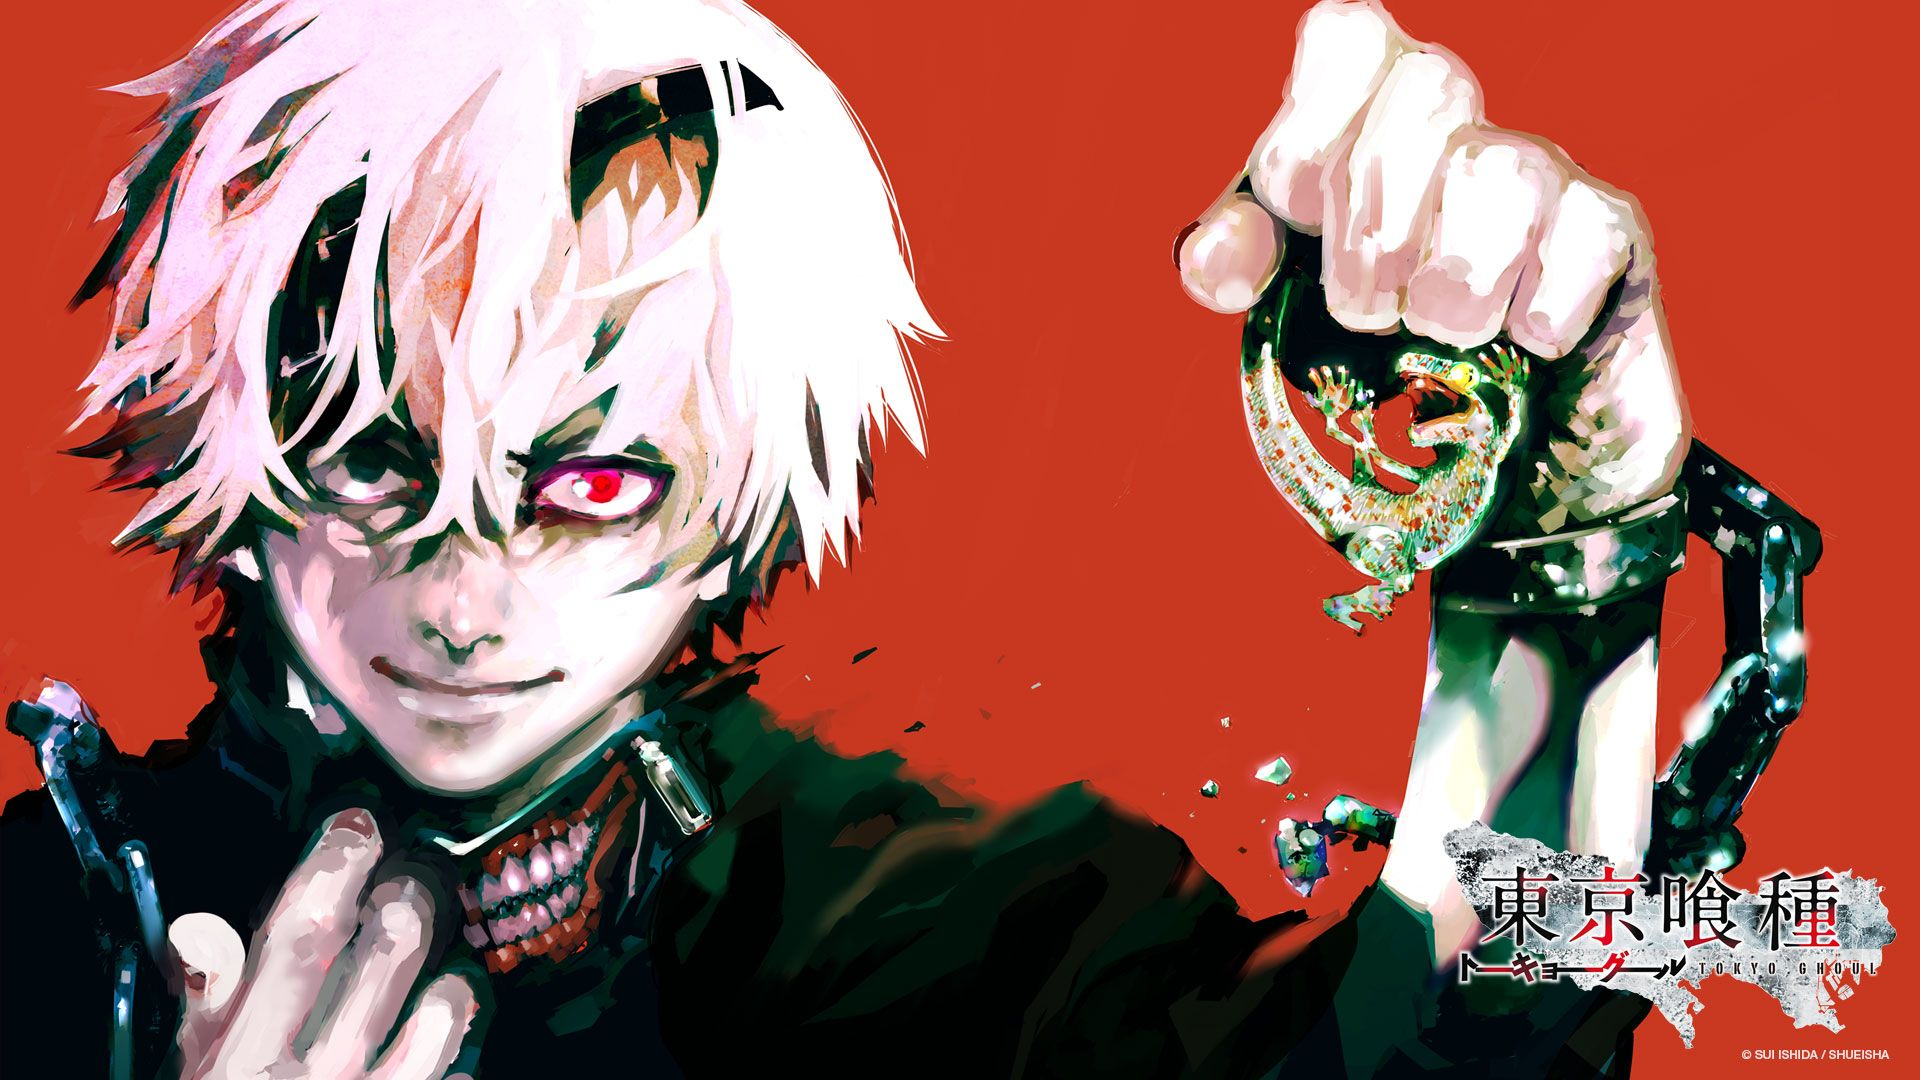 Download Tokyo Ghoul cover wallpaper (1920x1080